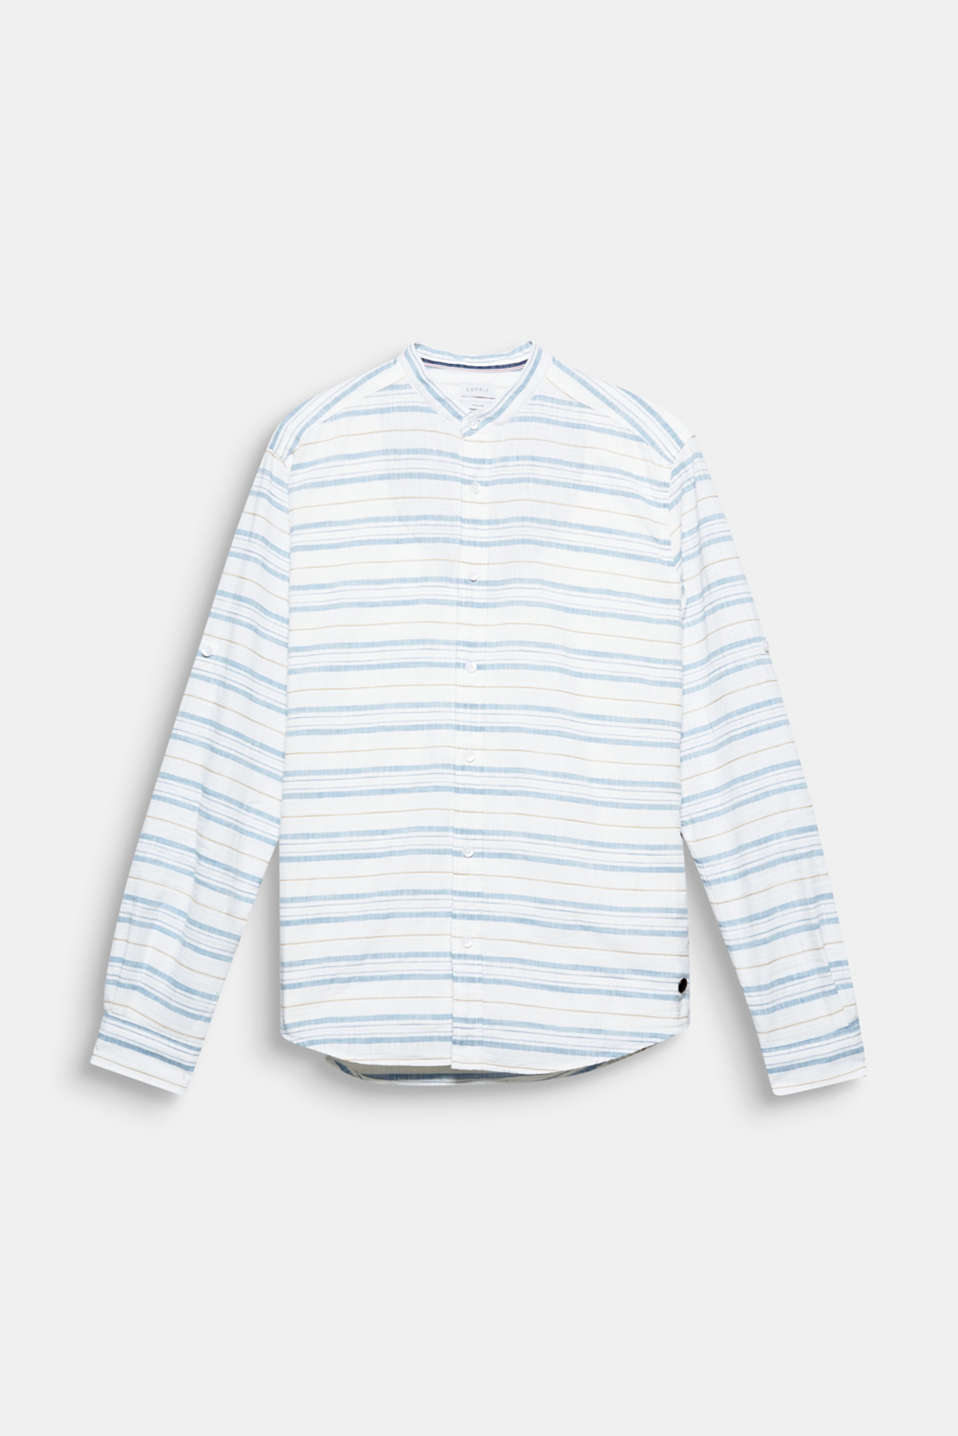 The differently textured stripes give this shirt featuring a stand-up collar and turn-up sleeves a light, summery look.